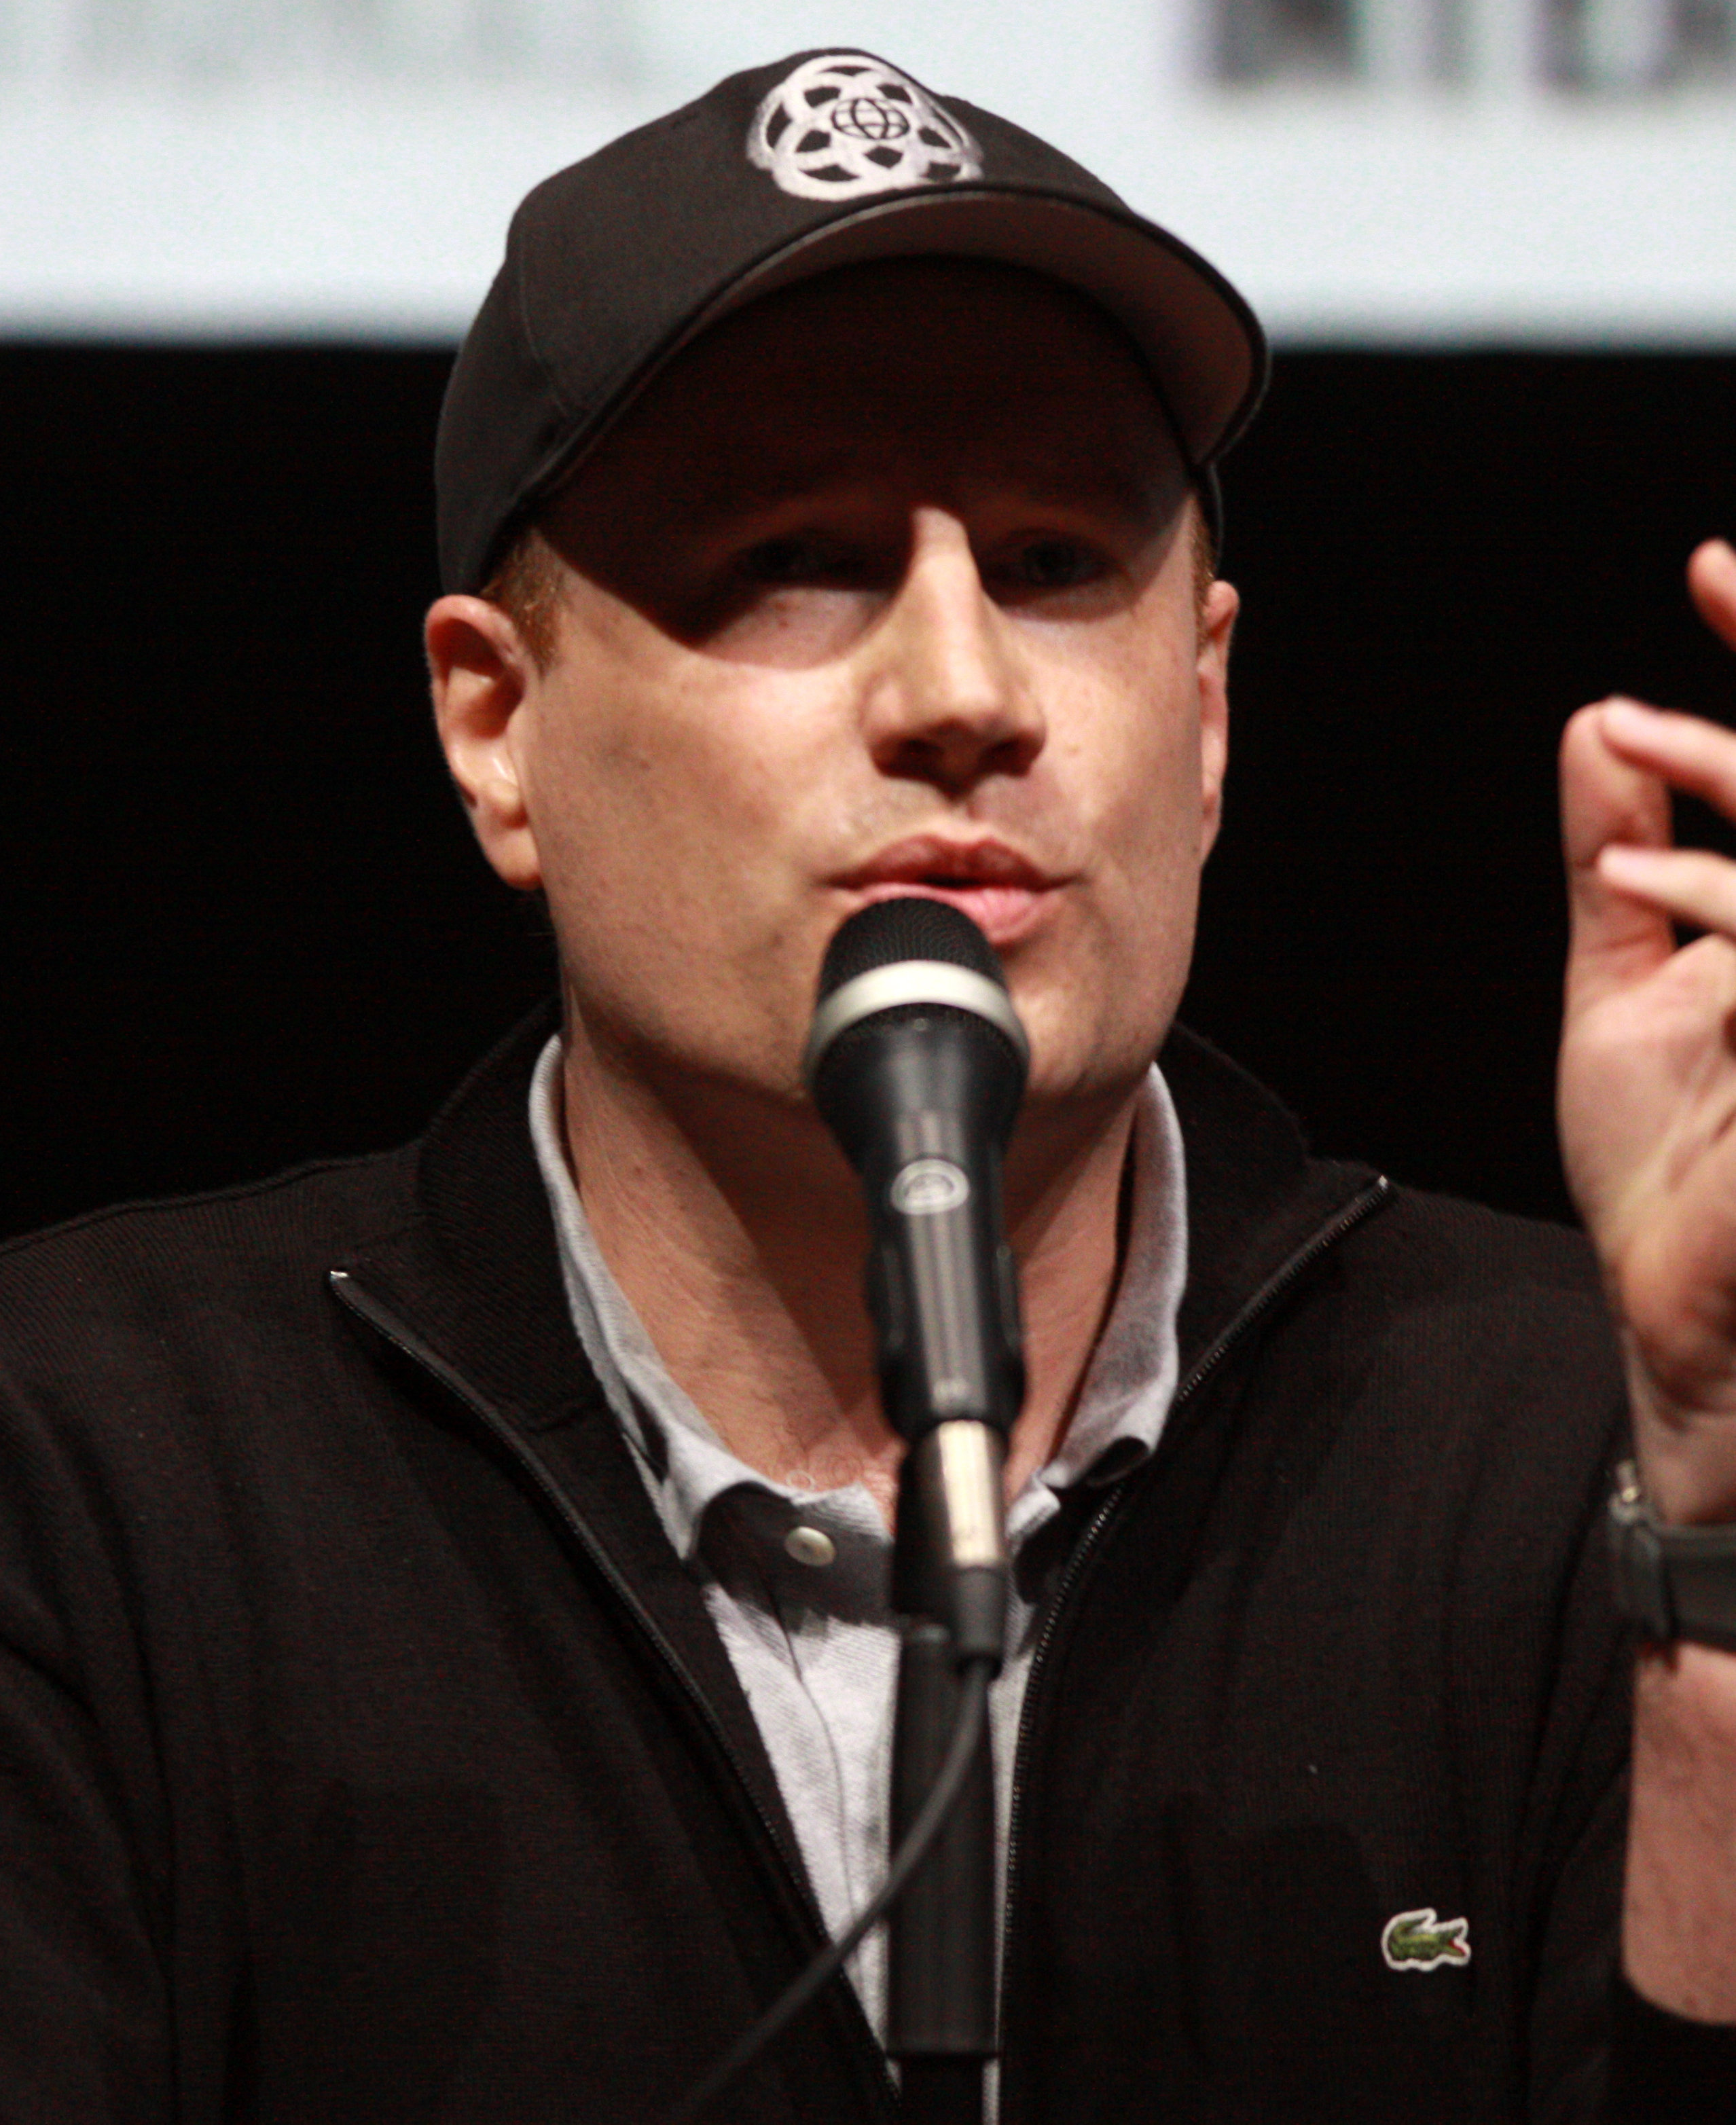 kevin feige biographykevin feige movies, kevin feige net worth, kevin feige twitter, kevin feige marvel, kevin feige interview, kevin feige email, kevin feige spider man, kevin feige wife, kevin feige agents of shield, kevin feige disney, kevin feige imdb, kevin feige biography, kevin feige news, kevin feige ike perlmutter, kevin feige inhumans, kevin feige ronda rousey, kevin feige fantastic 4, kevin feige house, kevin feige marvel tv, kevin feige contact